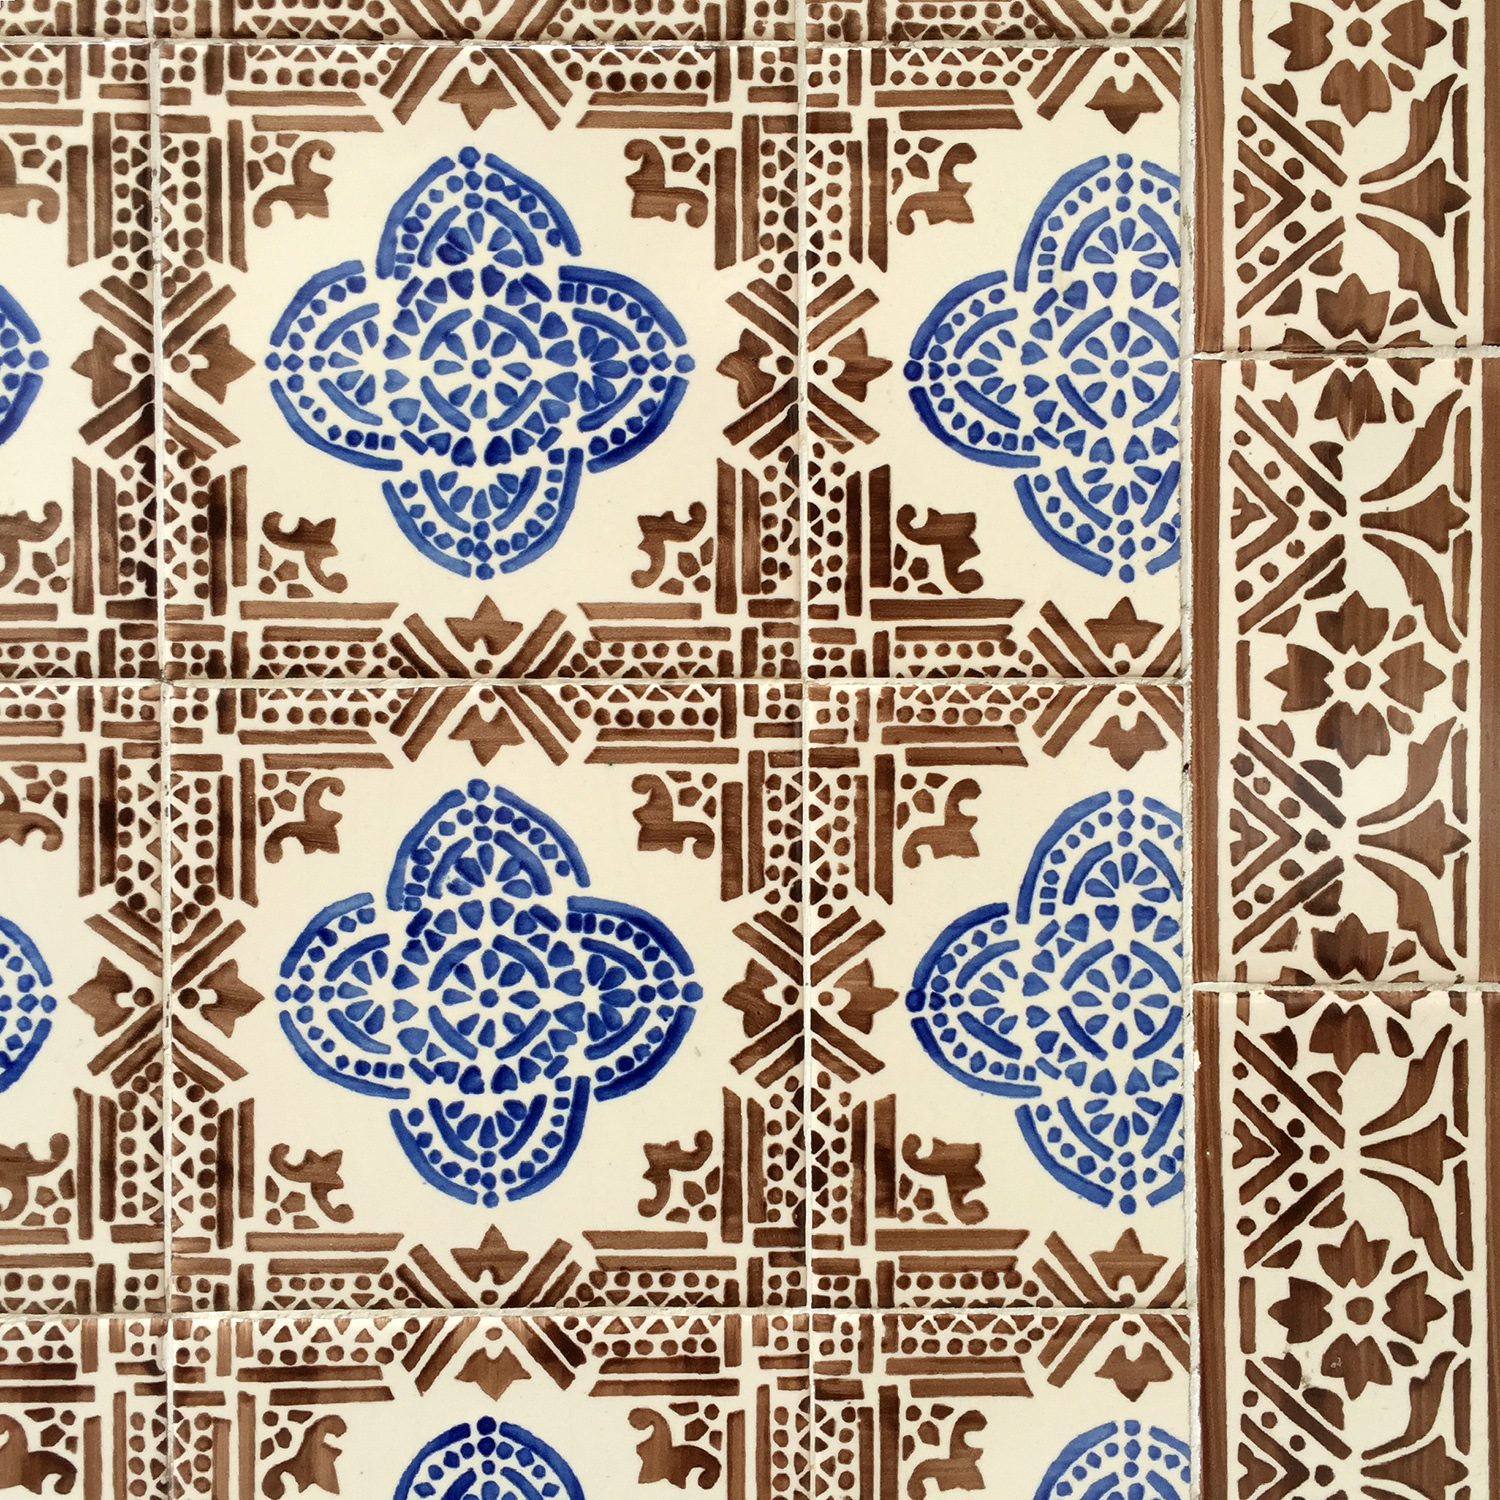 Blue Brown Tiles.jpg